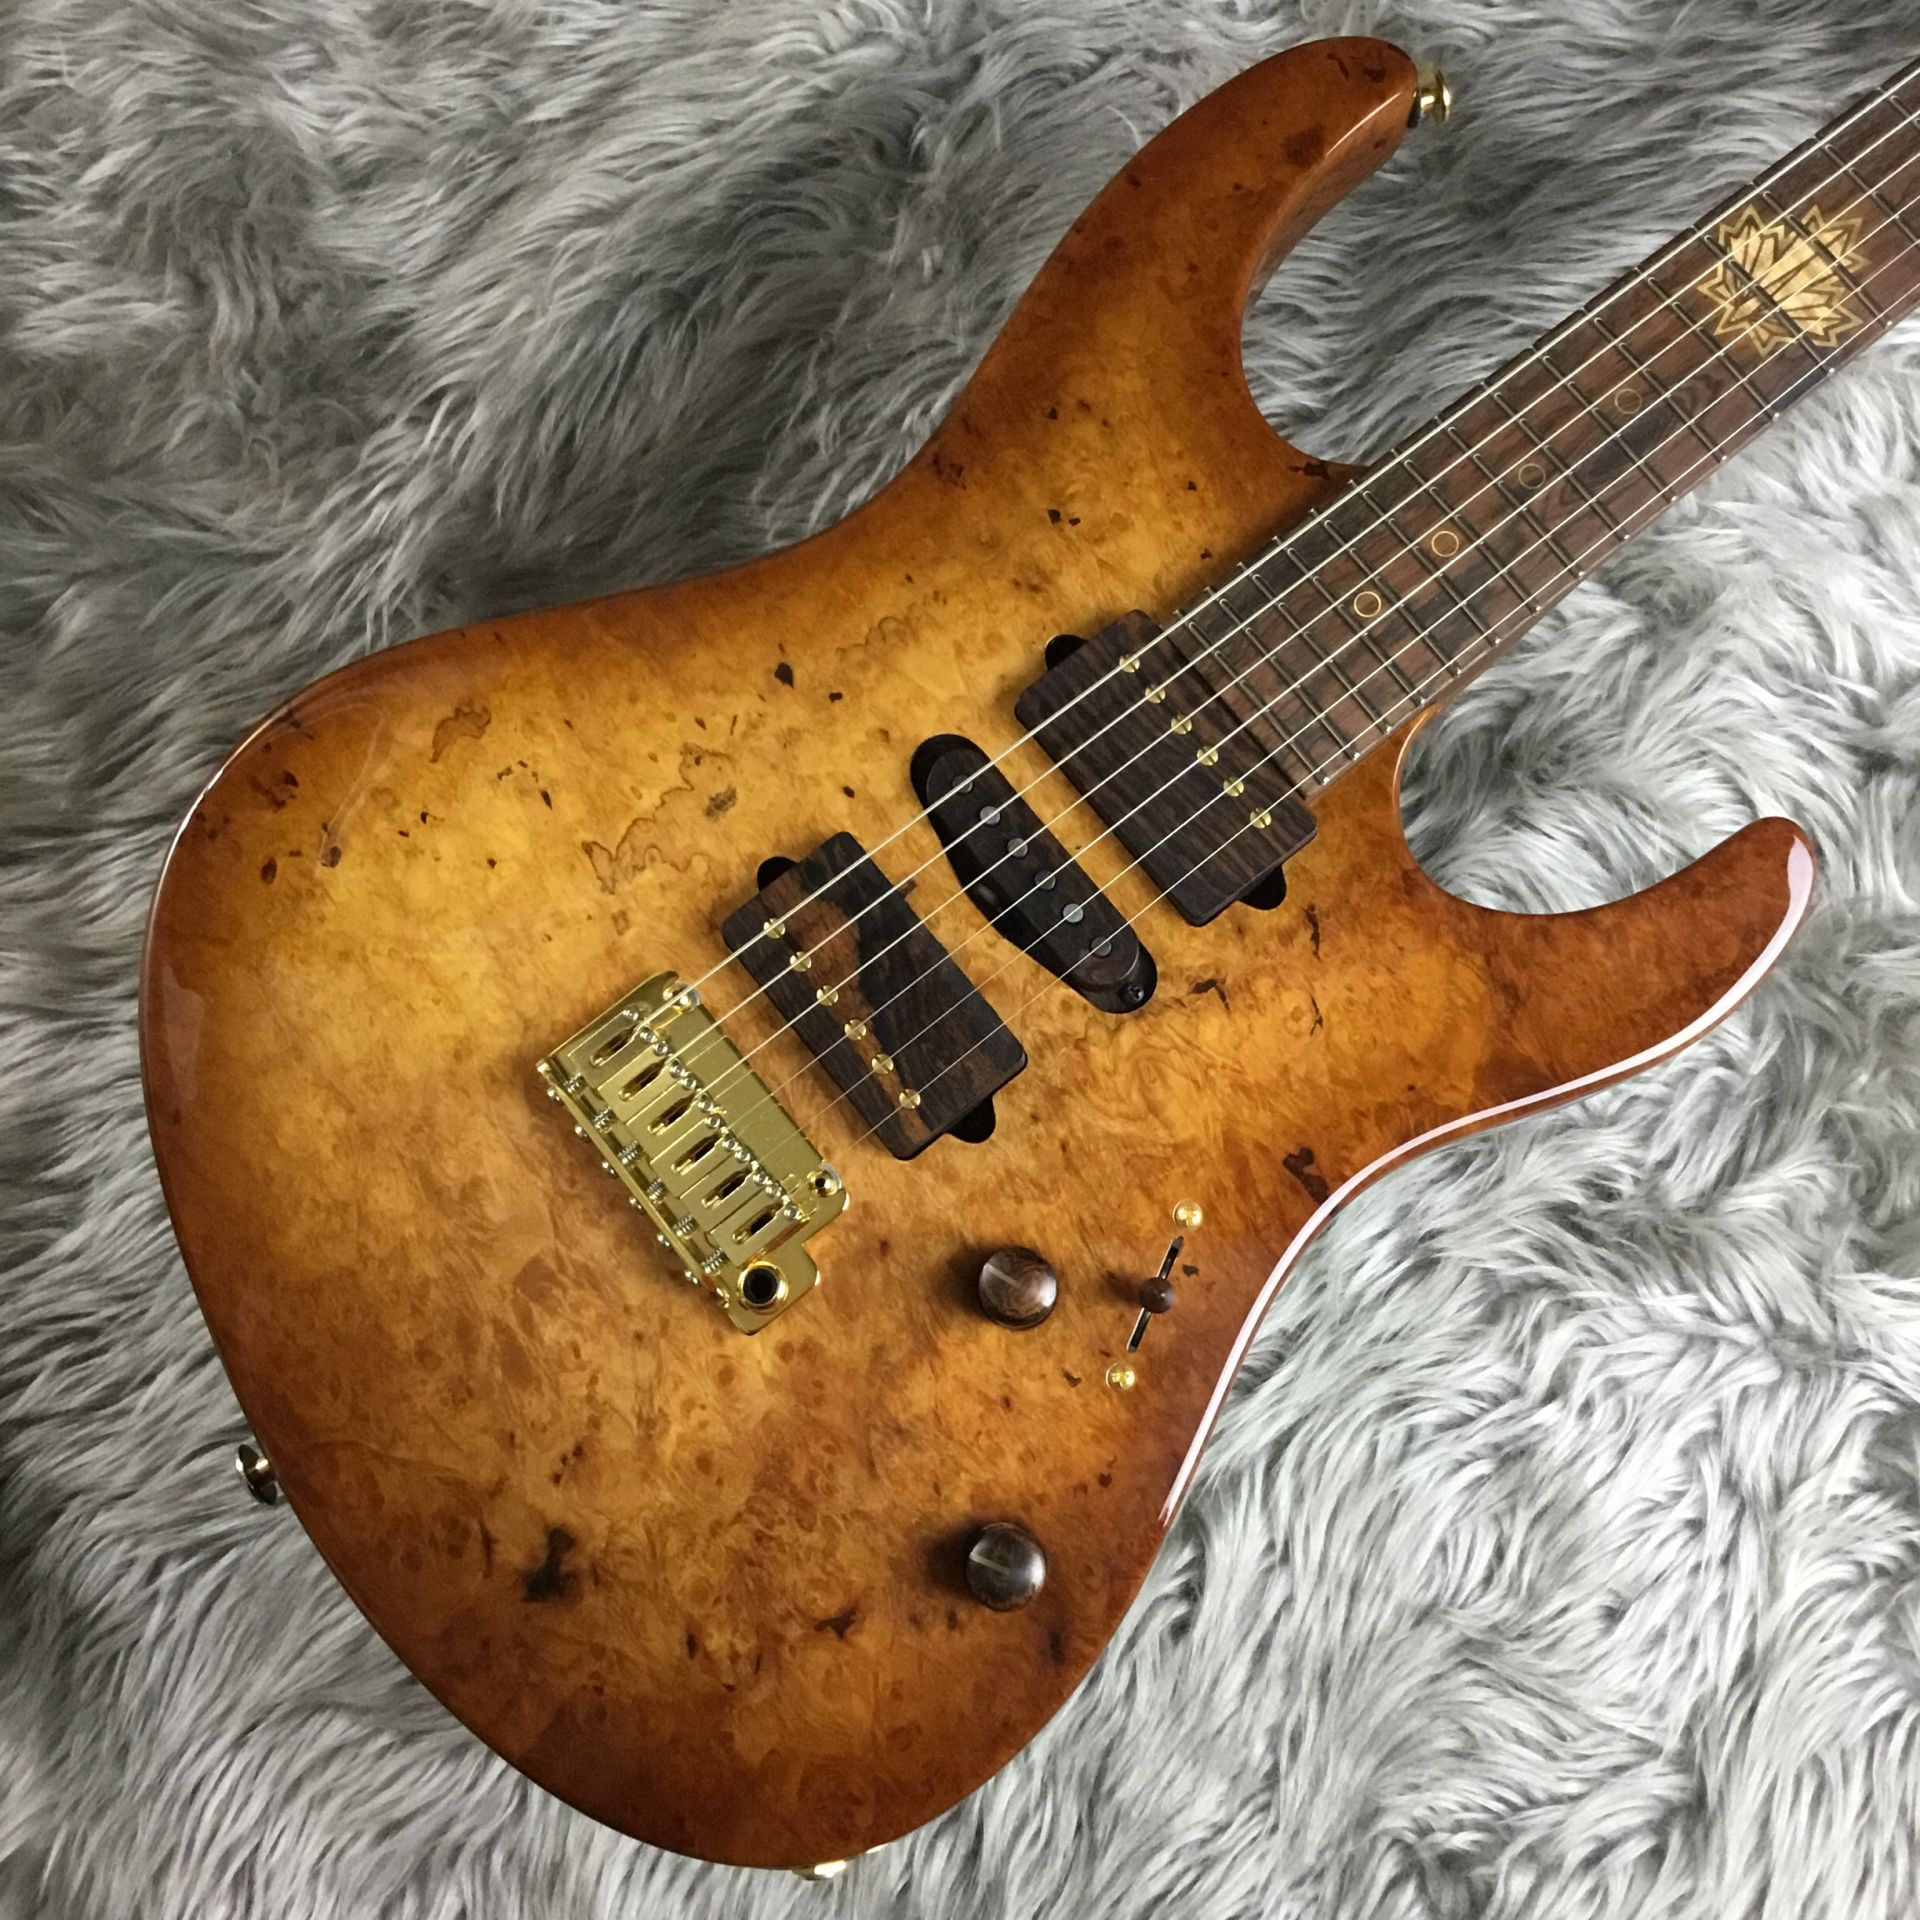 The 2015 Collection Burl Maple Modern Carve Topのボディトップ-アップ画像